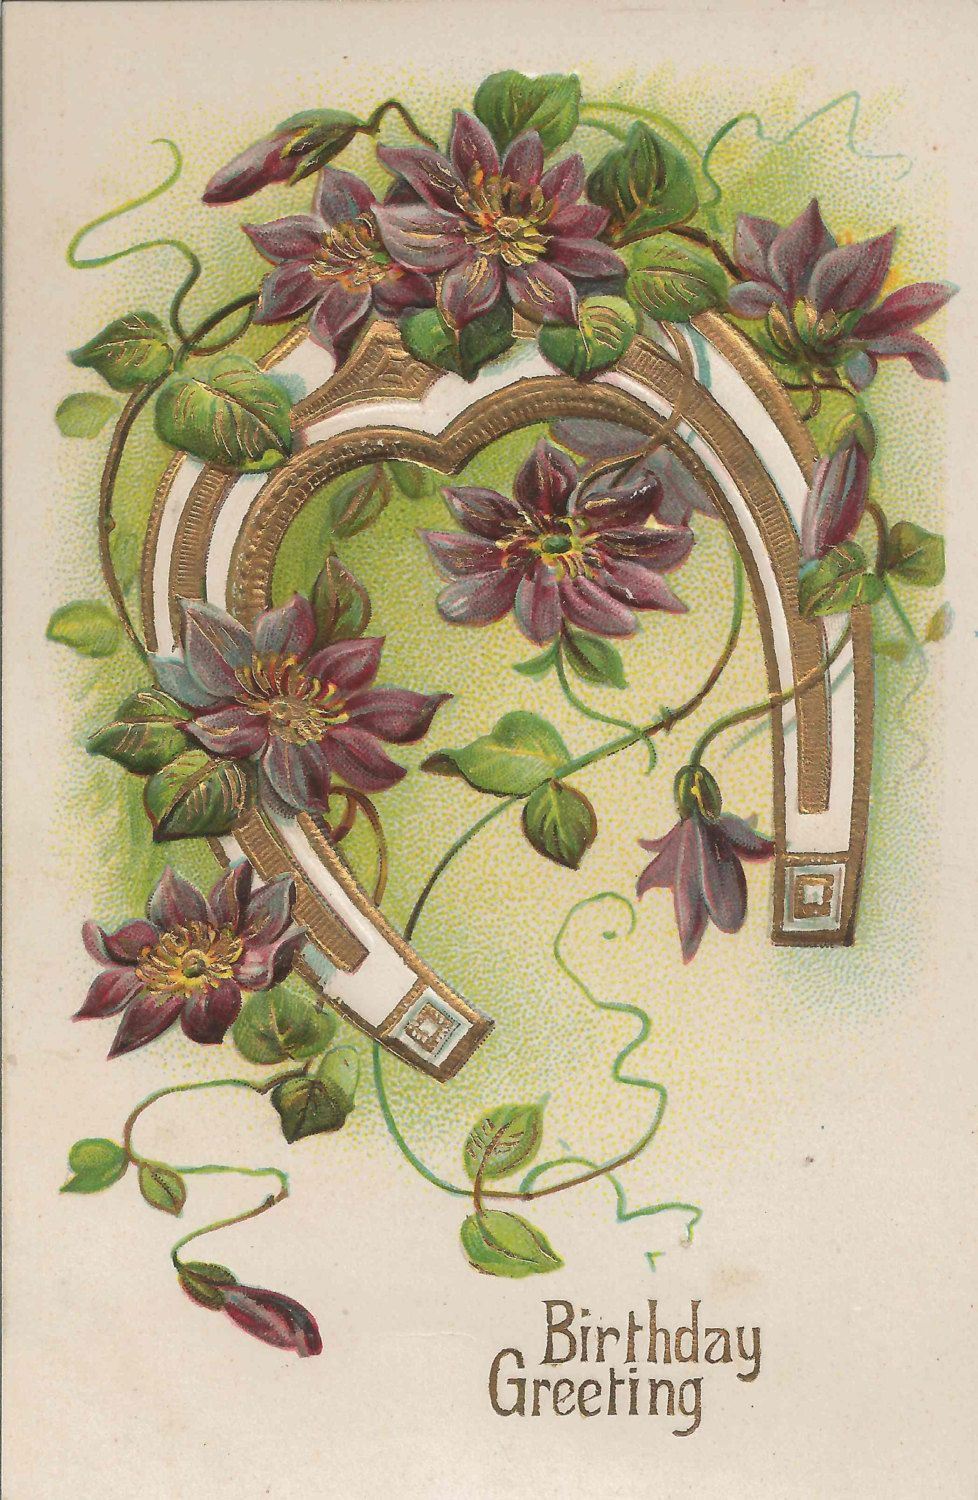 Antique Early 1900 Birthday Greeting Postcard Featuring Good Luck